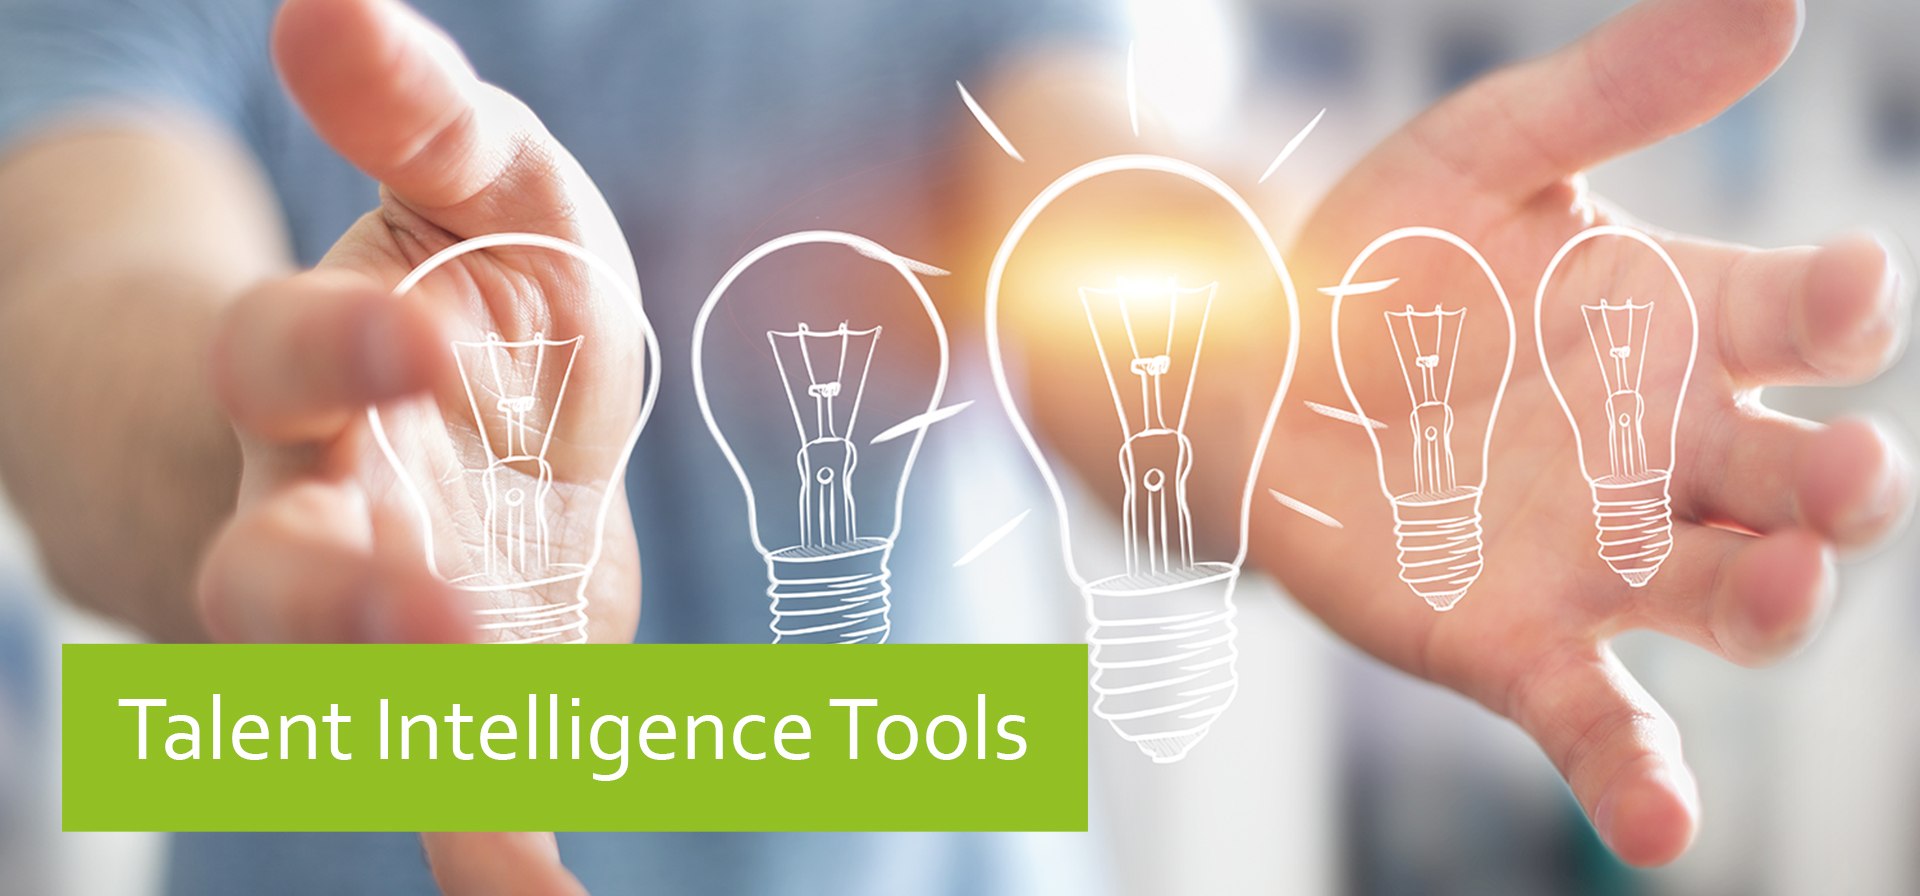 Workforce Optimisation, Assessments, Talent Intelligence Tools